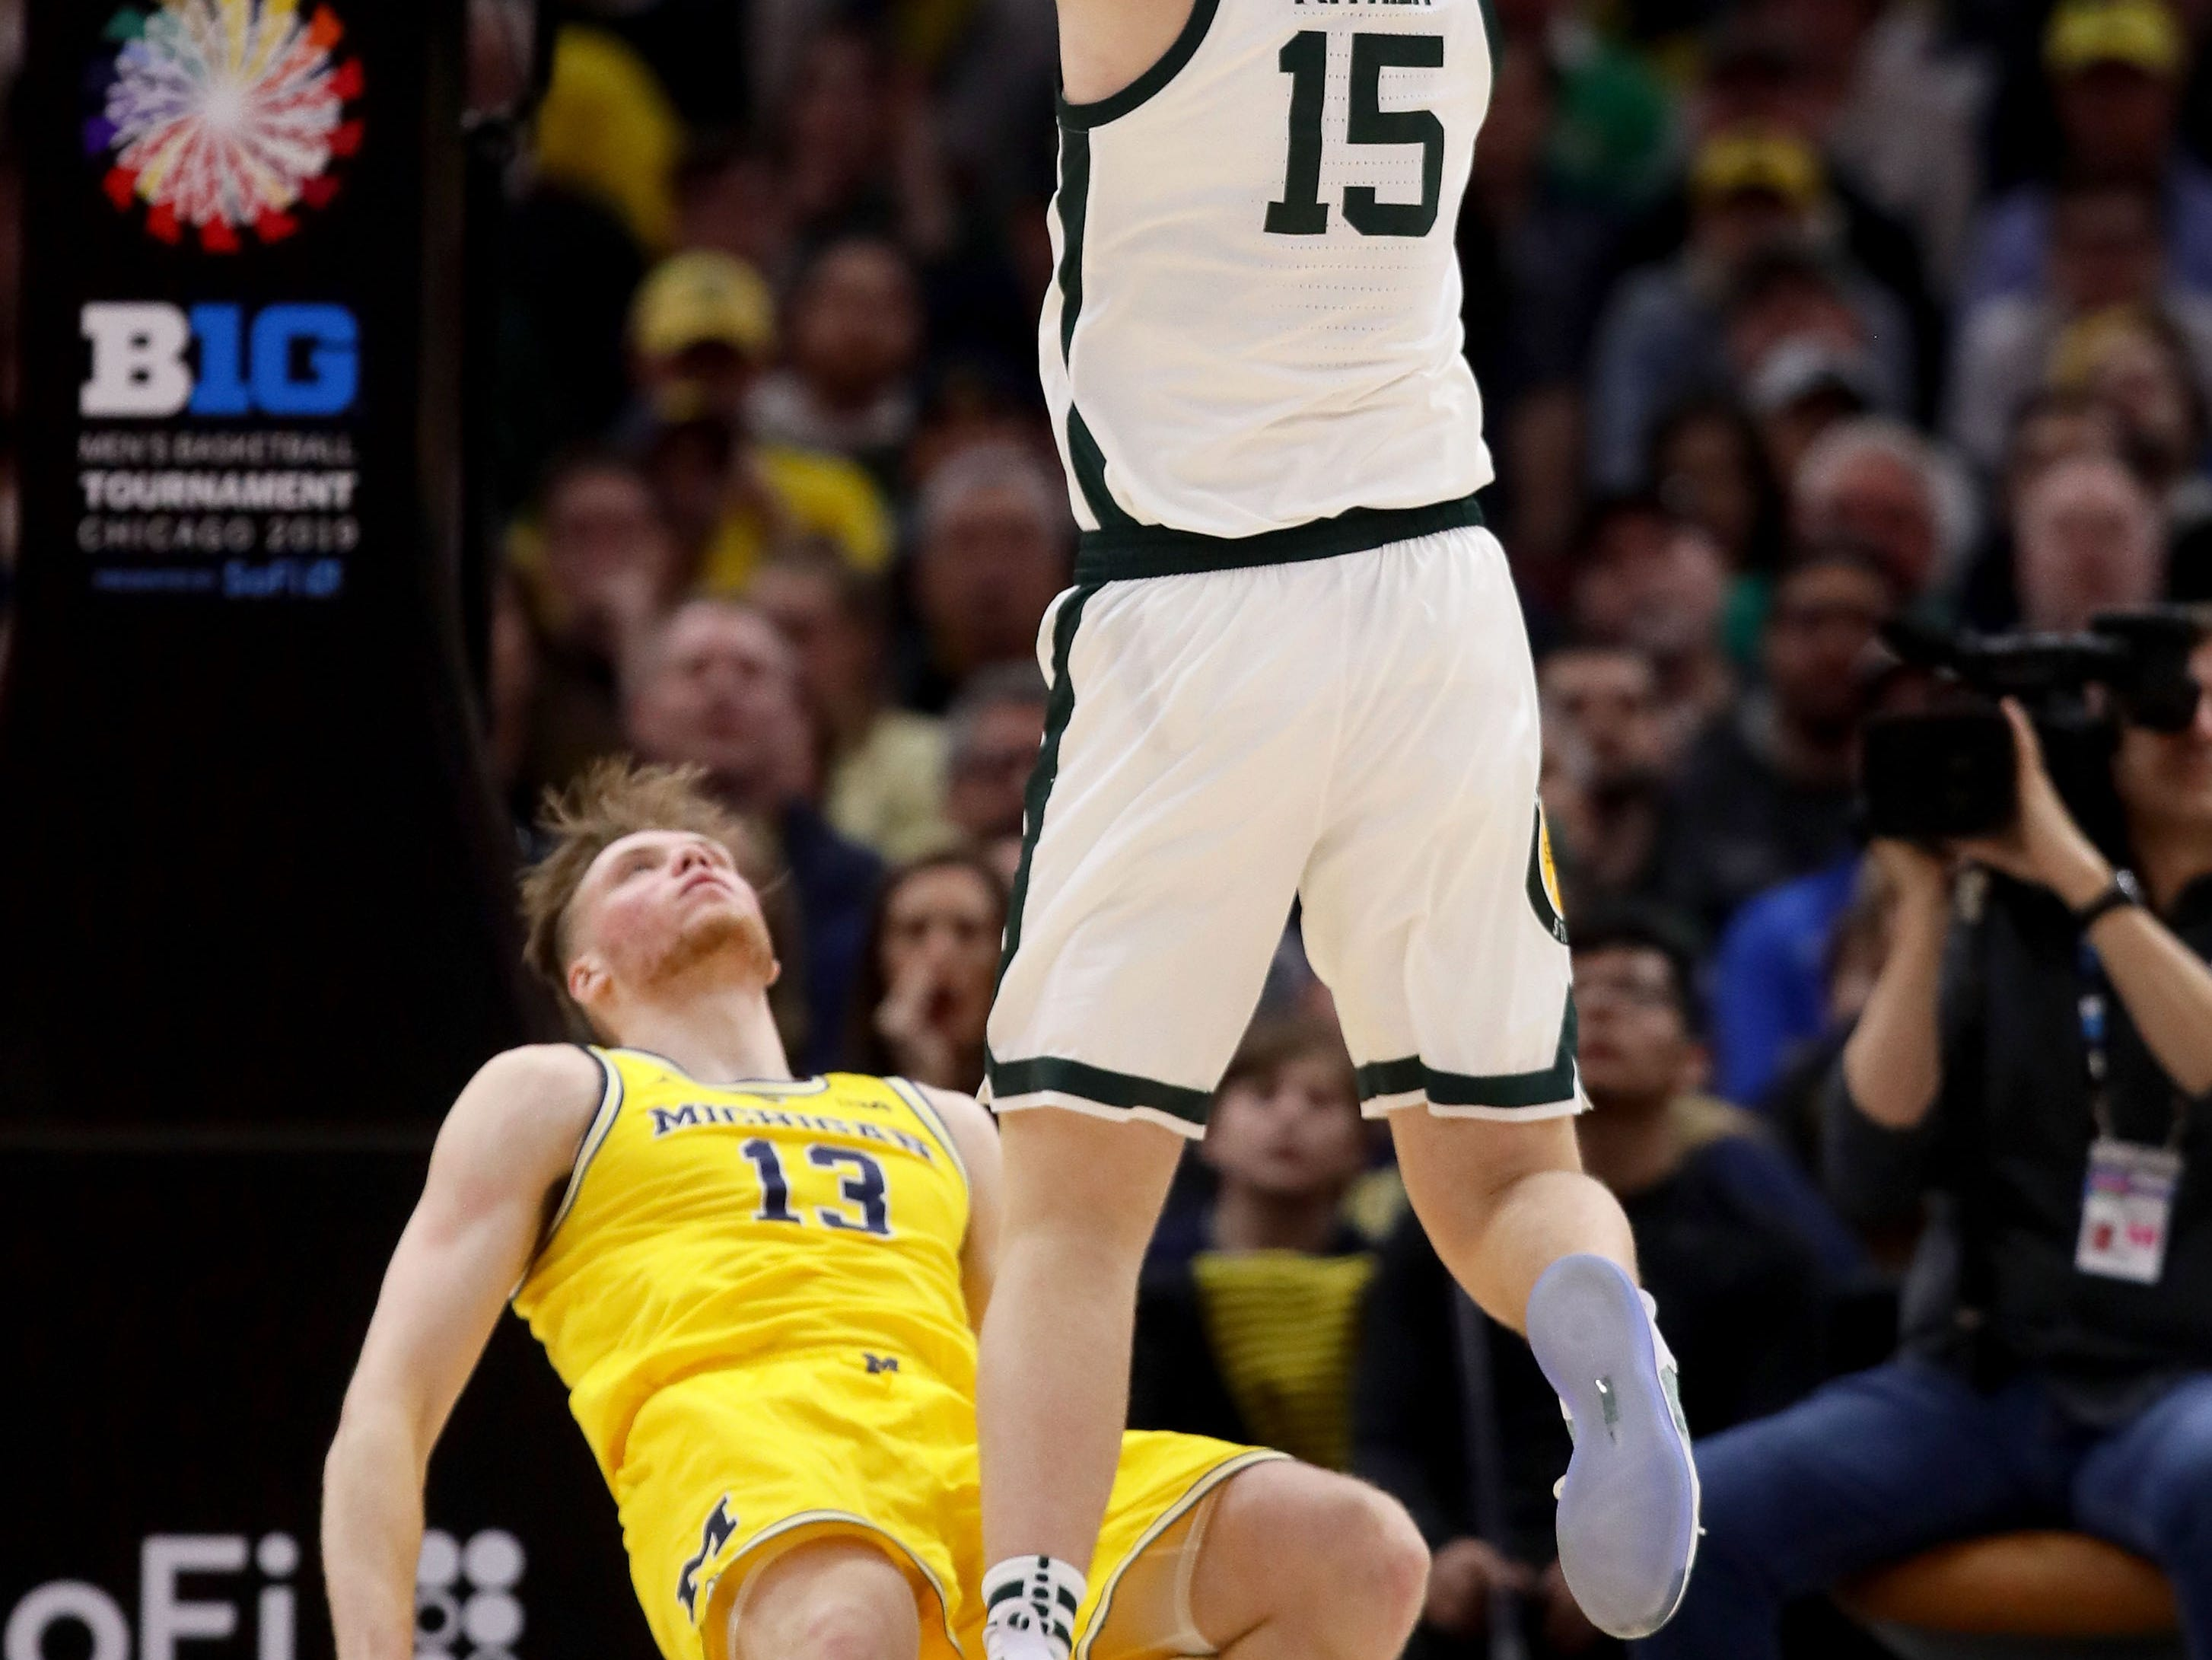 Thomas Kithier #15 of the Michigan State Spartans attempts a shot over Ignas Brazdeikis #13 of the Michigan Wolverines in the first half during the championship game of the Big Ten Basketball Tournament at the United Center on March 17, 2019 in Chicago, Illinois.